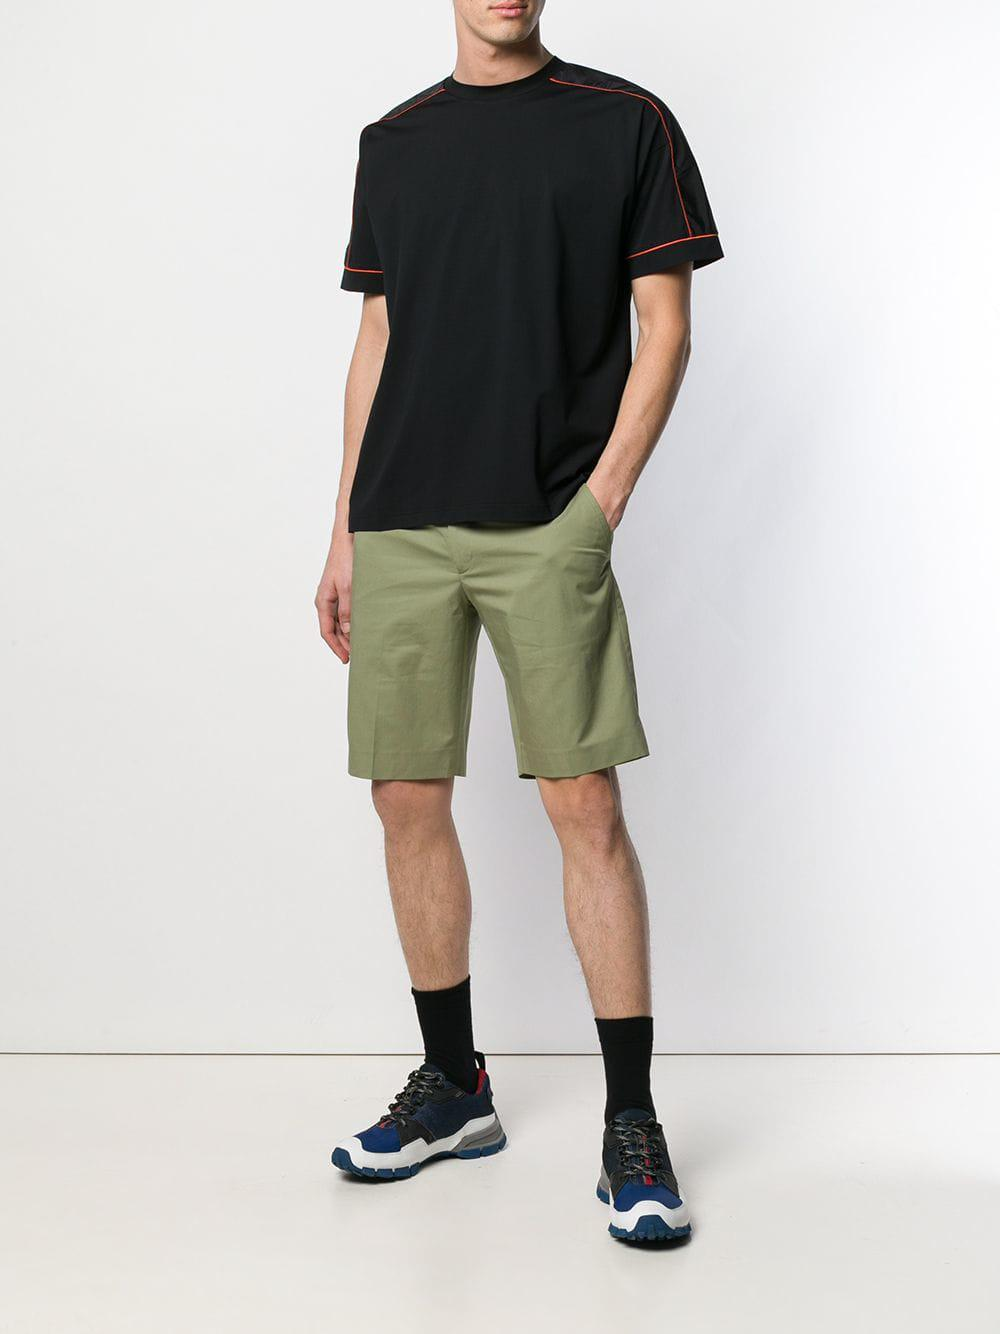 8a93ab7ee2e4e Lyst - Prada Contrast Piping Detailed T-shirt in Black for Men